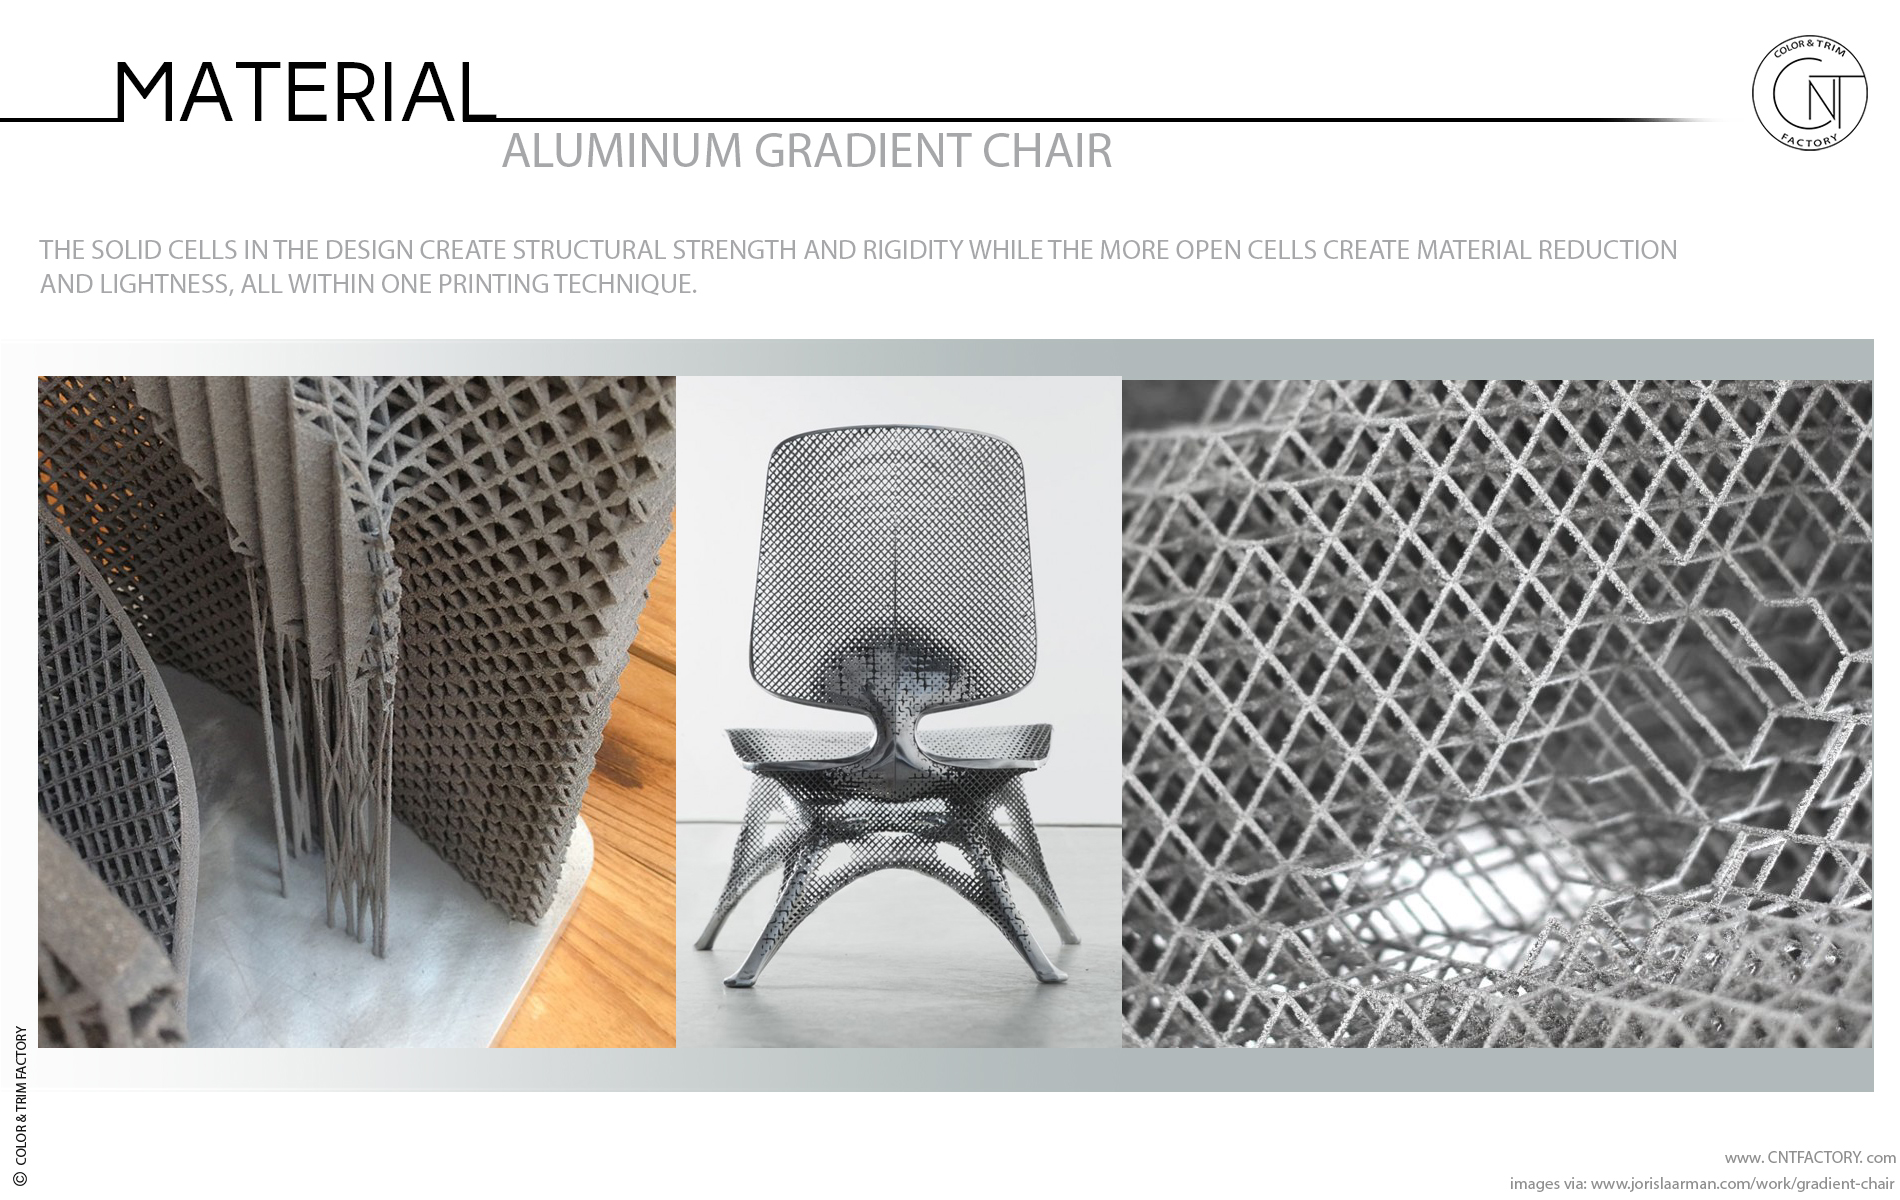 3D Printed Aluminum Gradient Chair weight reduction